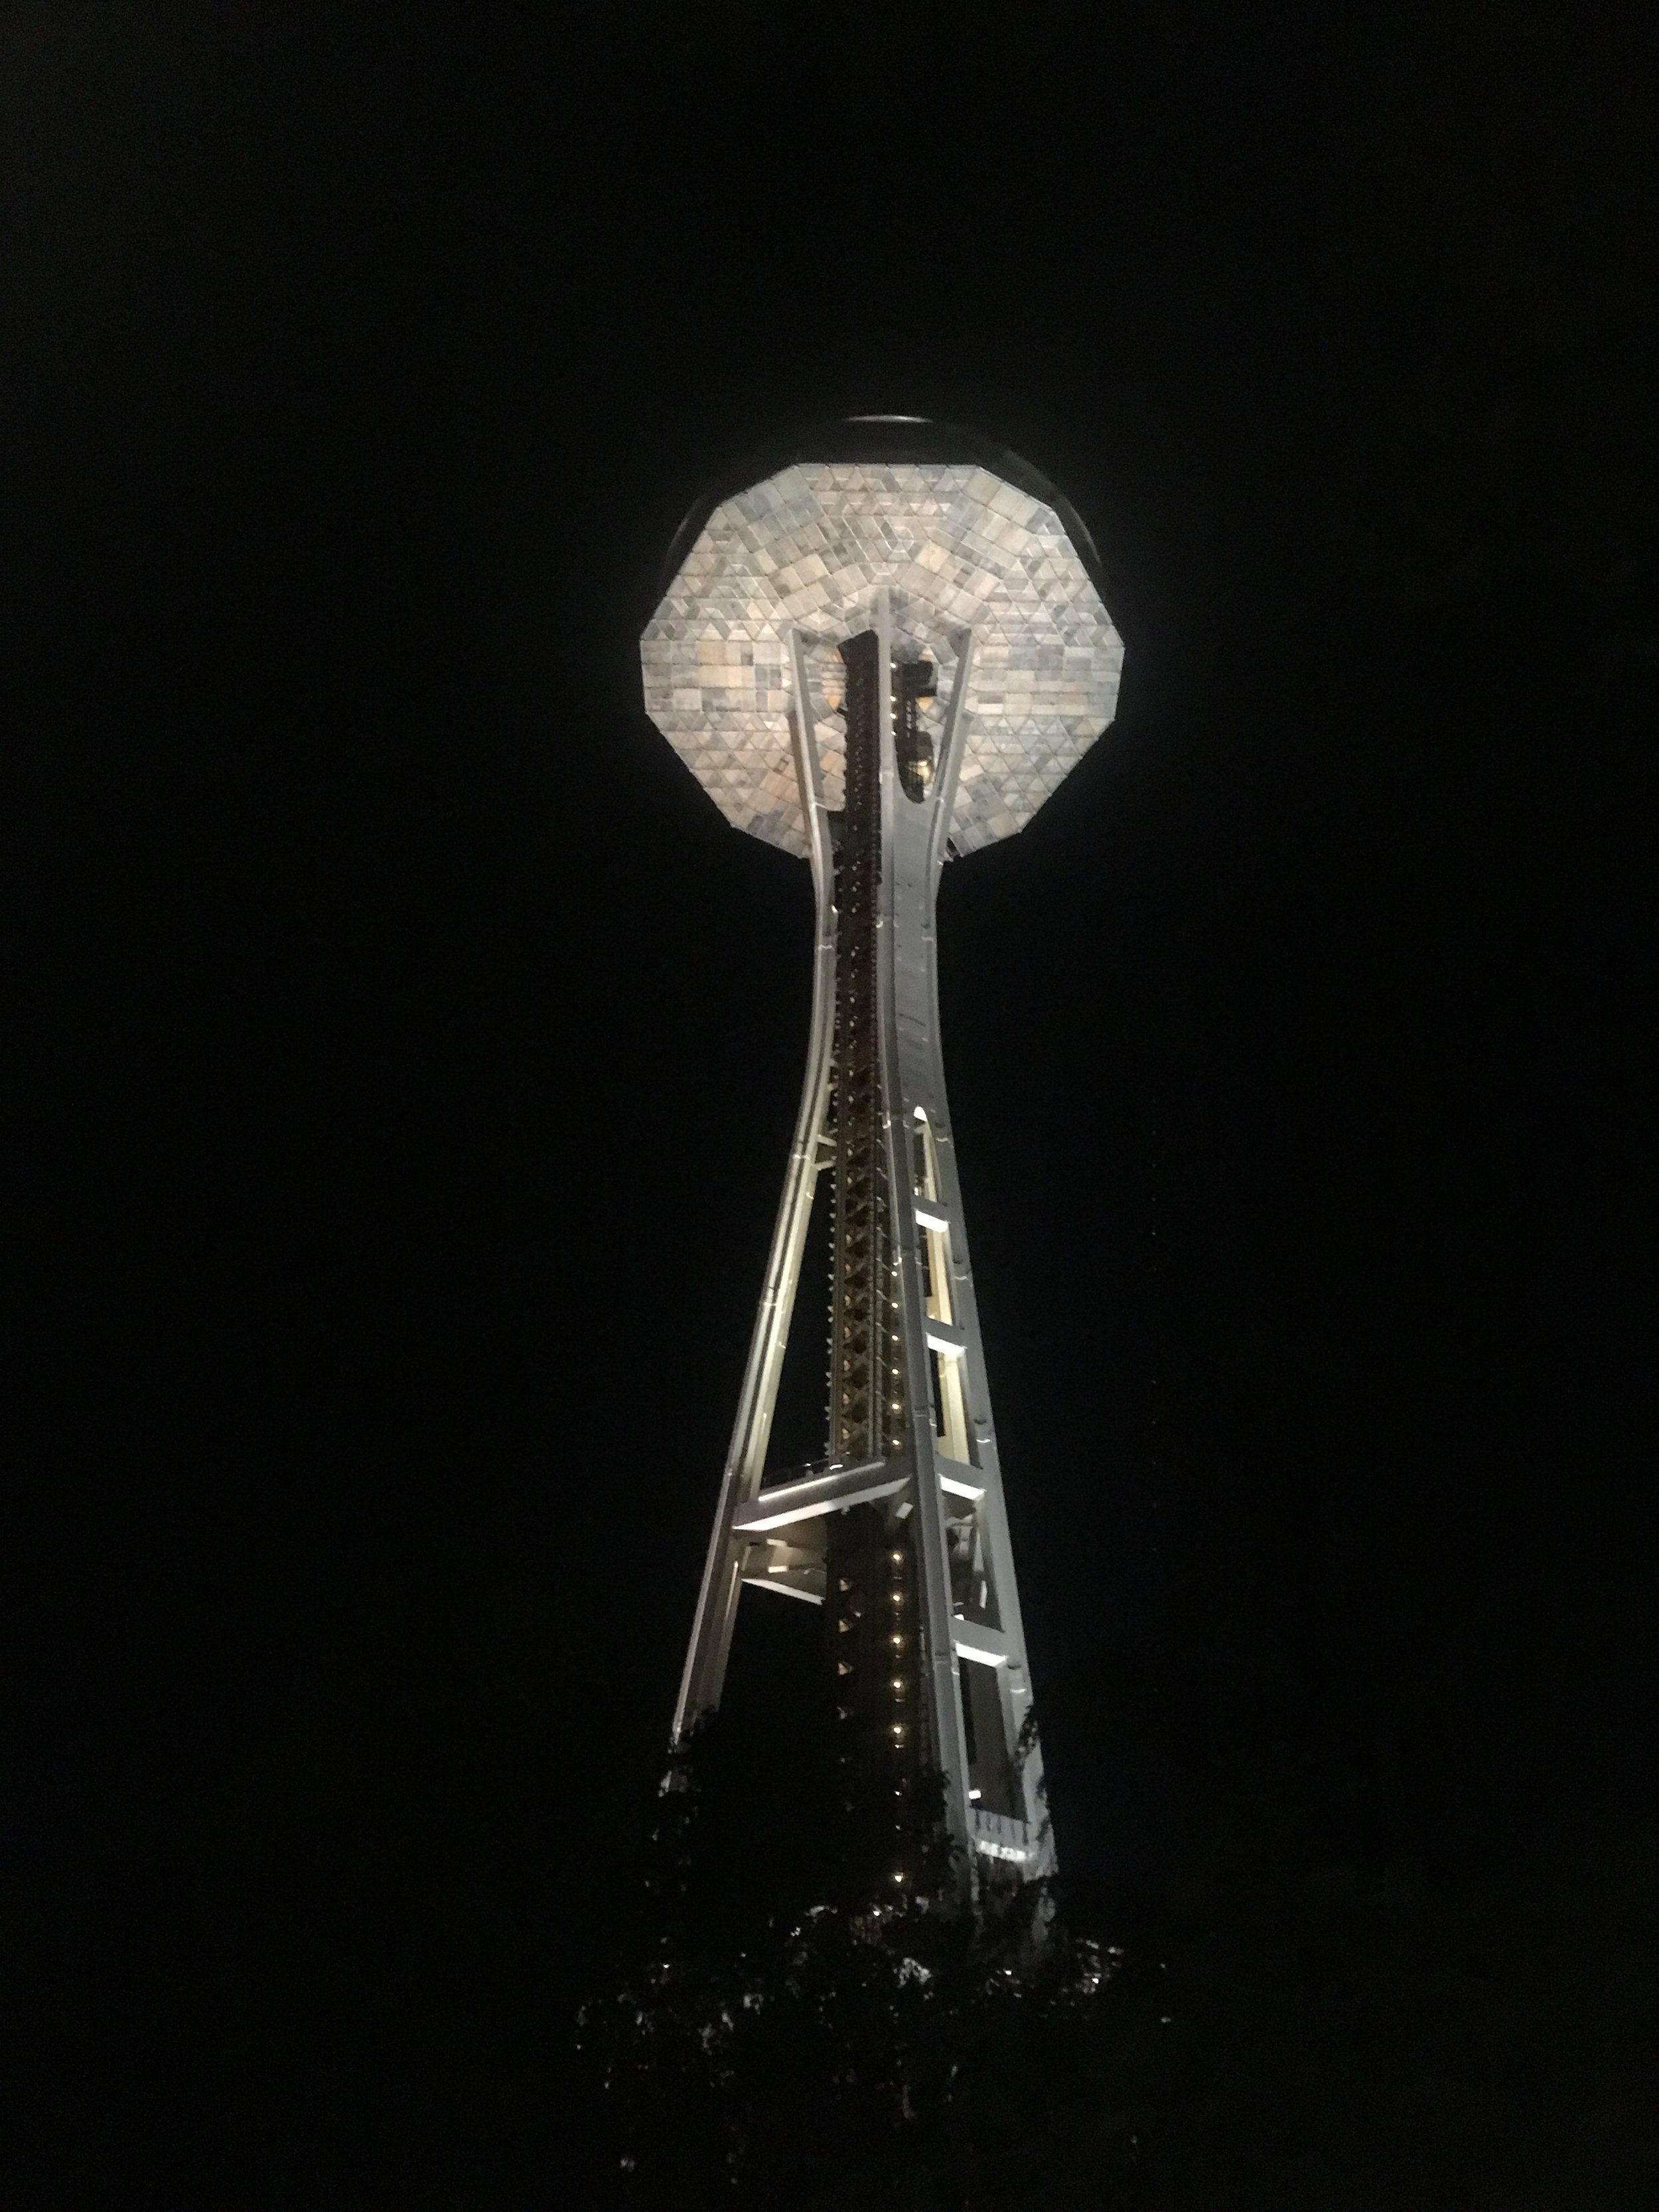 Went to see the space needle.